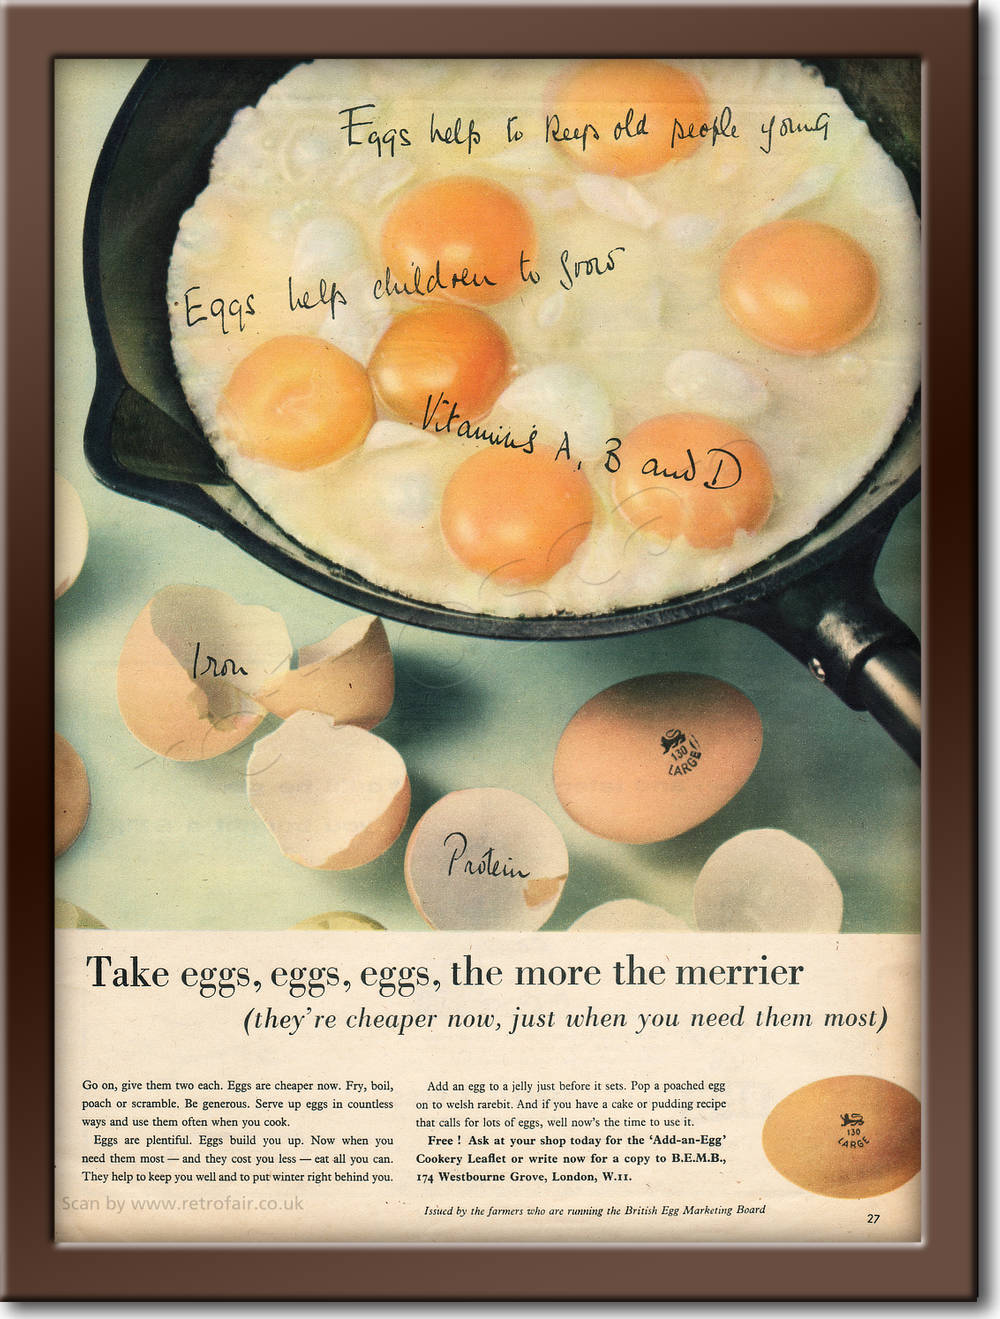 1958 Egg Marketing Board - framed preview retro